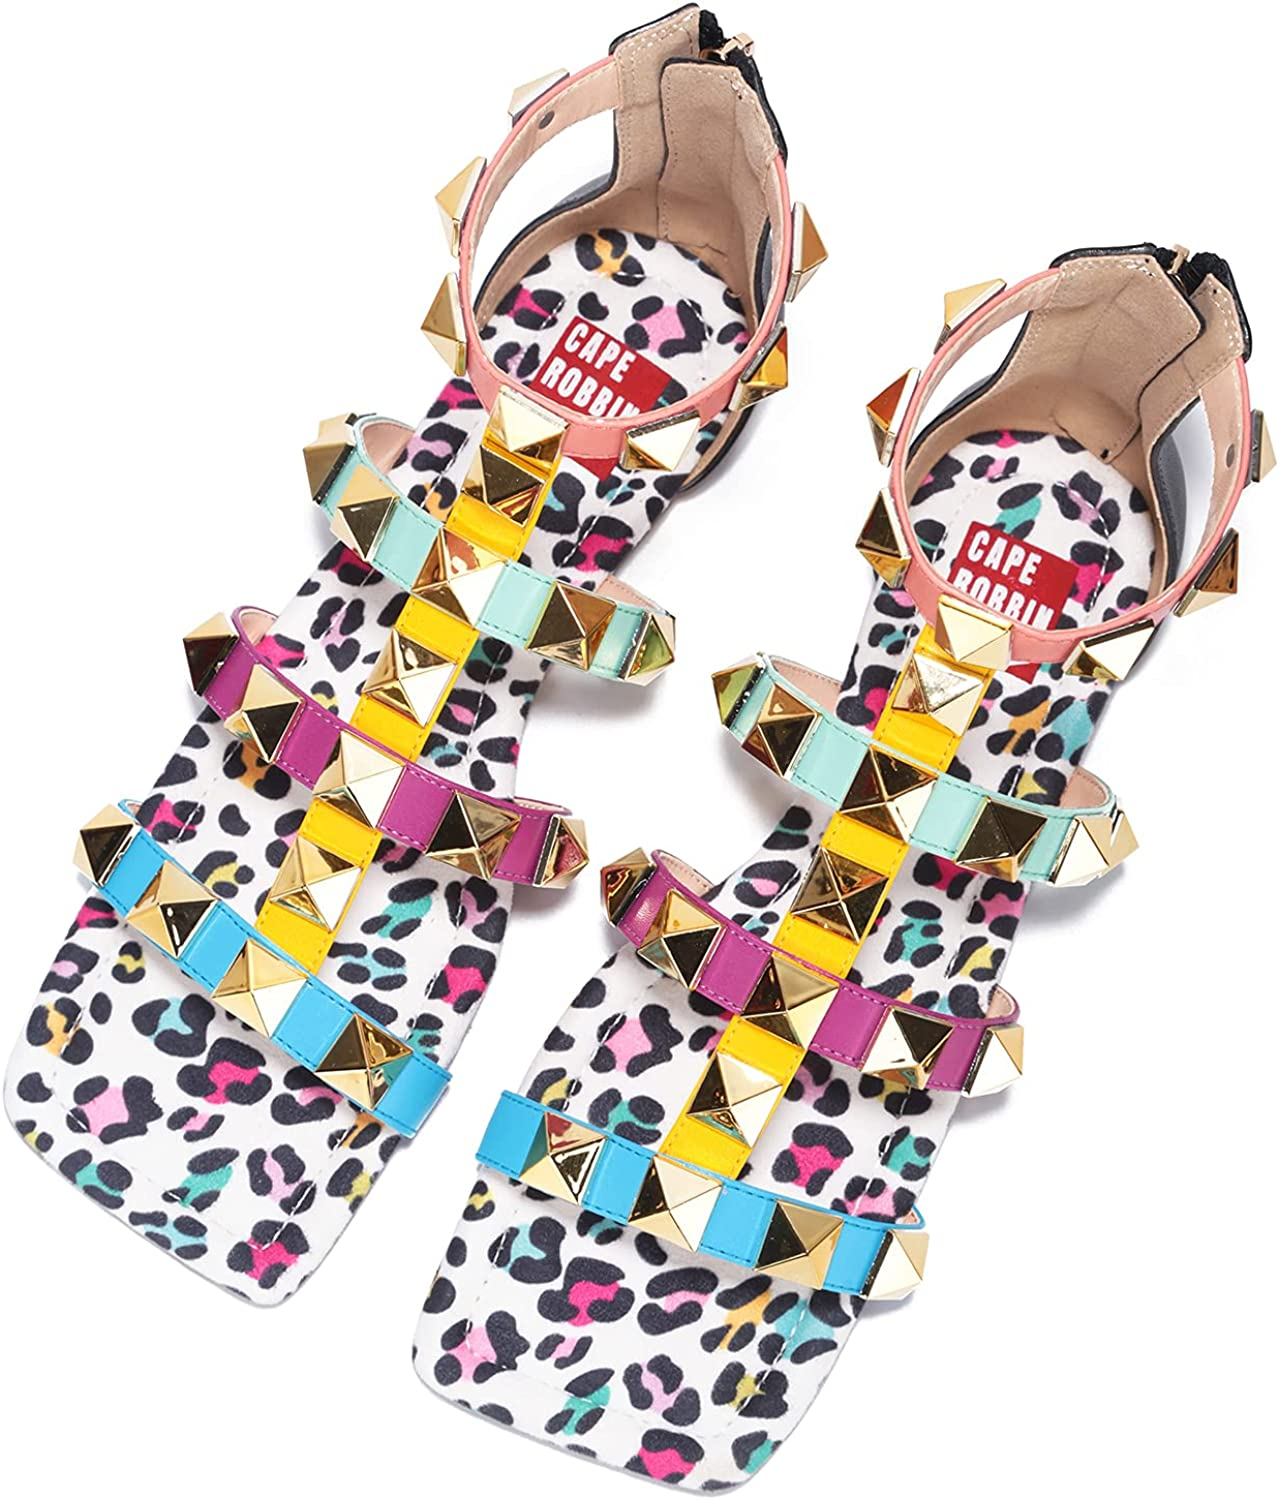 Cape Robbin Presents Play Zimza Sandals Slides for Women, Studded Womens Mules Slip On Shoes